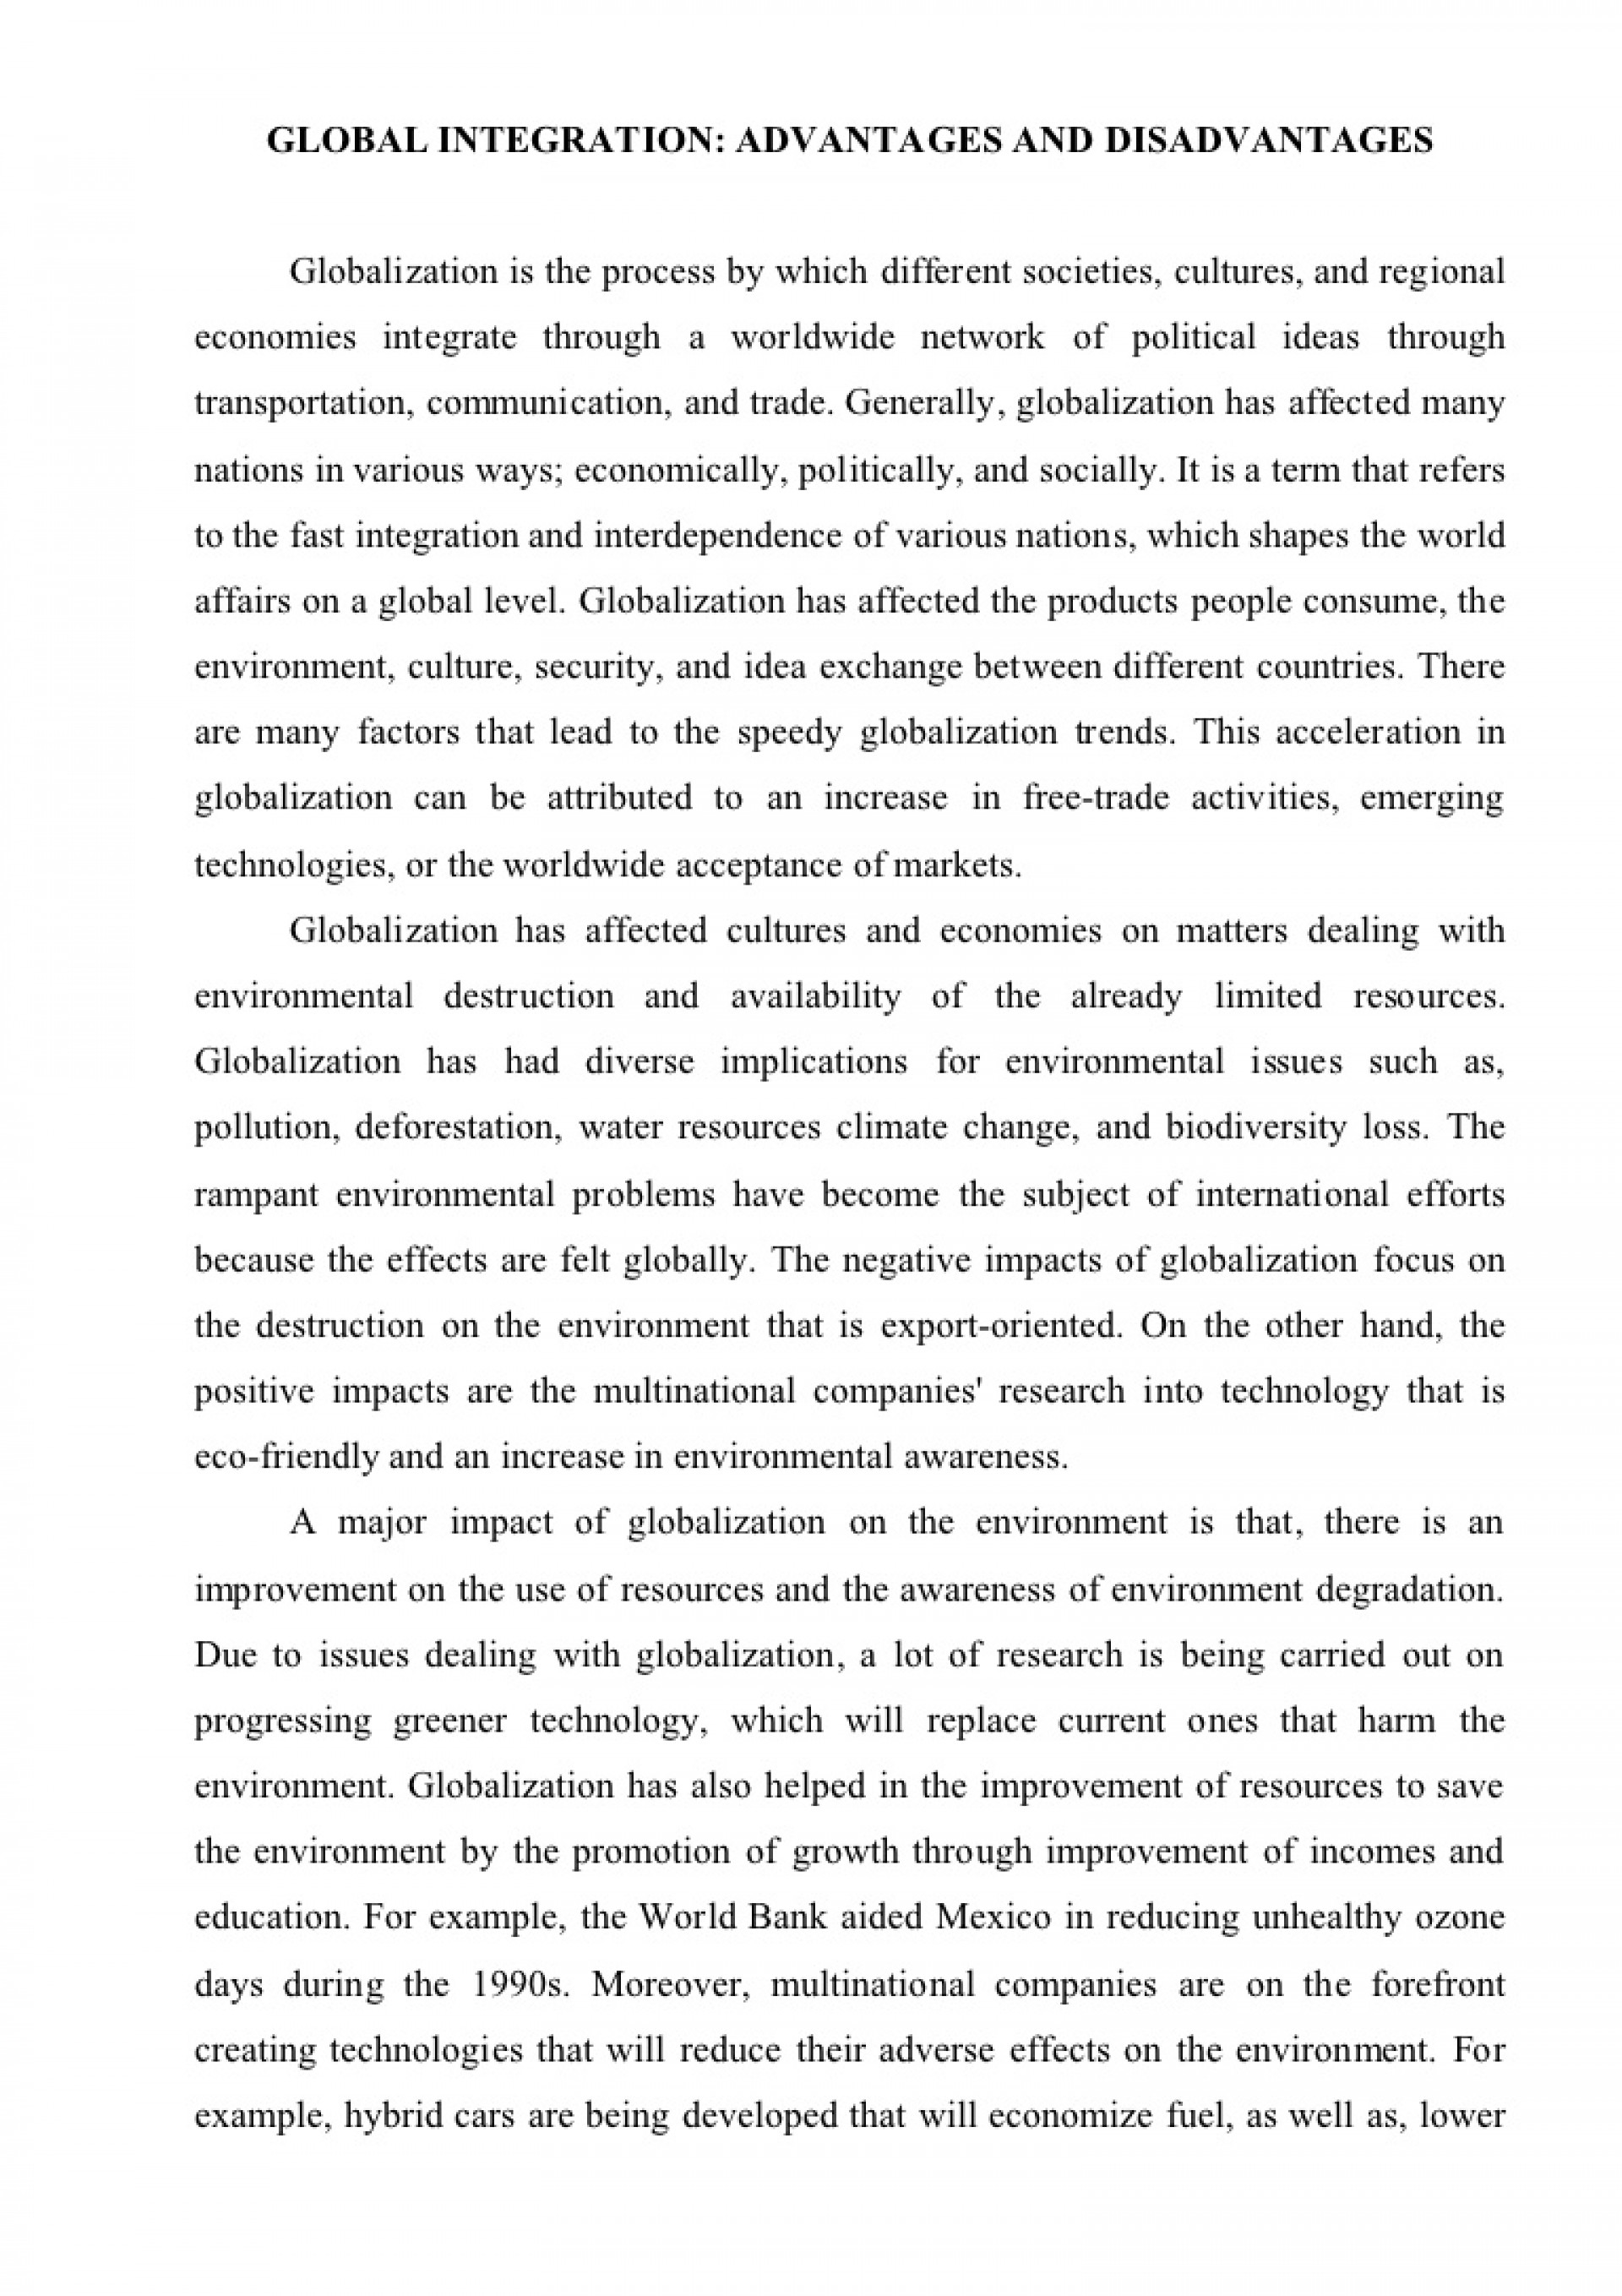 021 Essayglobalization Phpapp02 Thumbnail Essay Example Advantage And Disadvantage Of Shocking Science Advantages Disadvantages In Tamil Pdf Hindi Urdu 1920